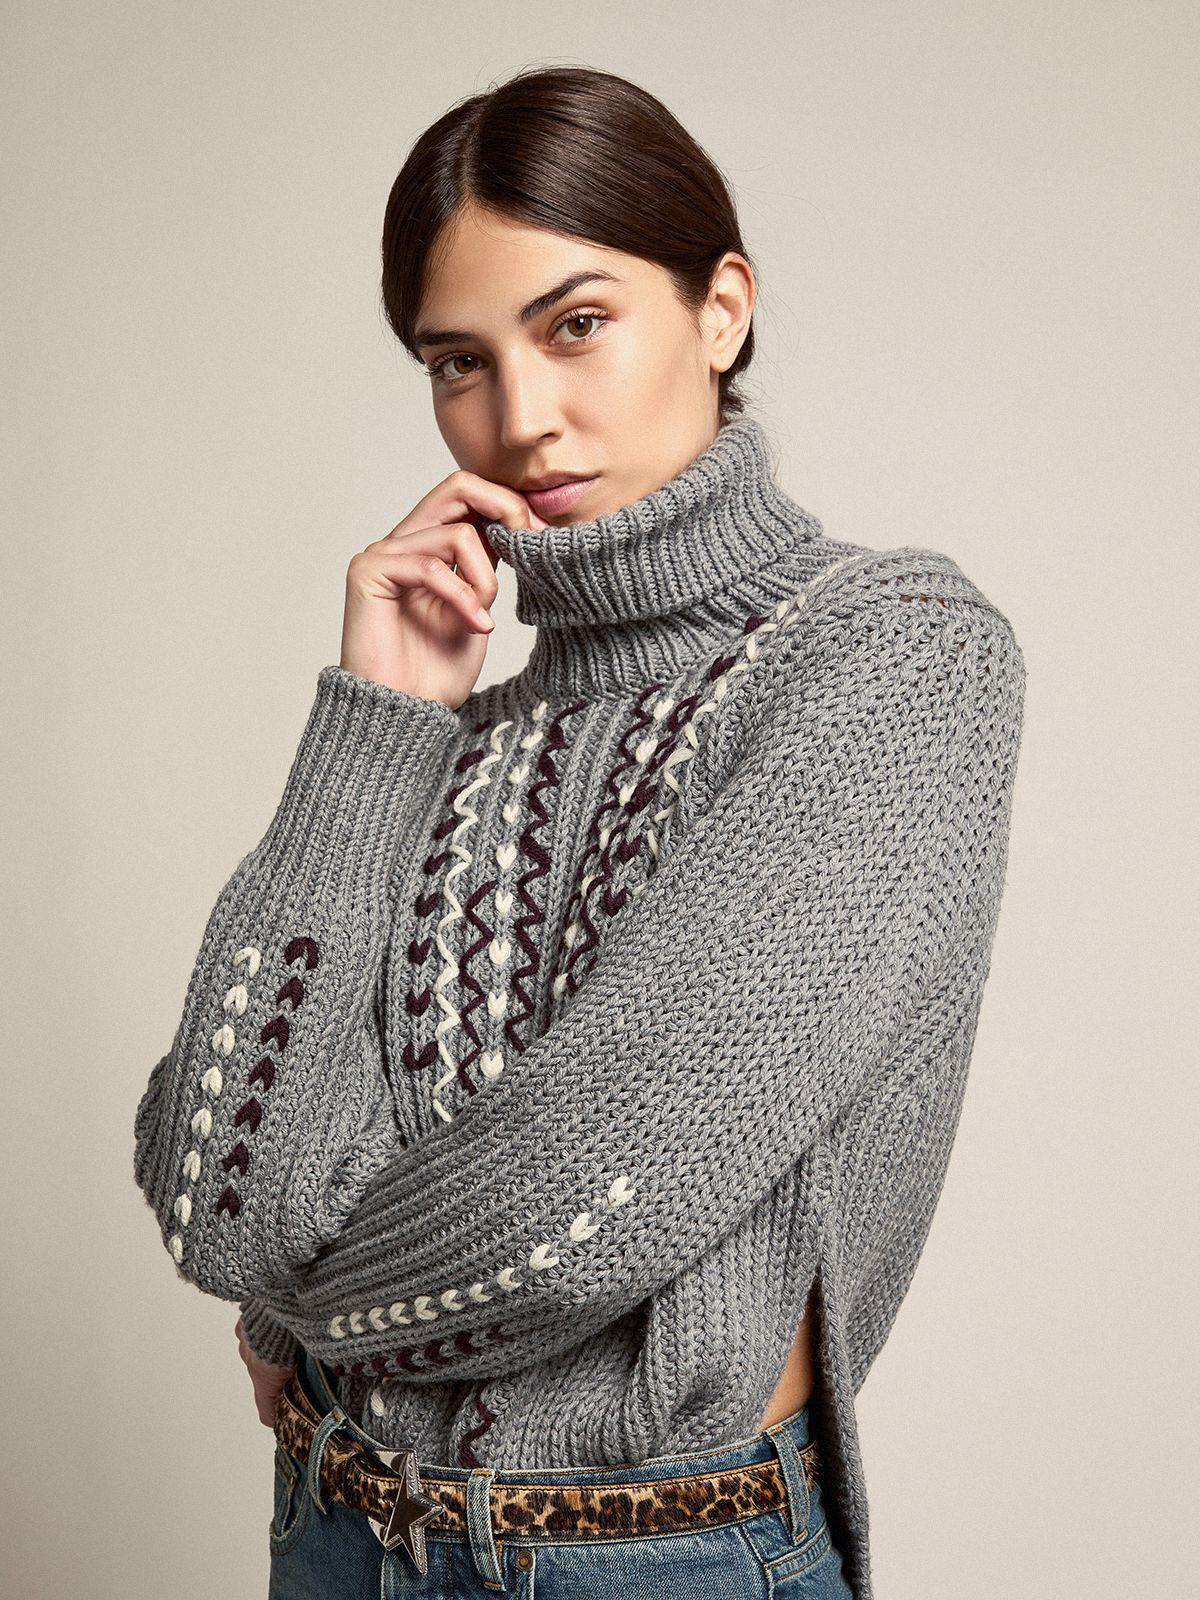 Gray melange Journey Collection Doreen turtleneck sweater with contrasting embroidery